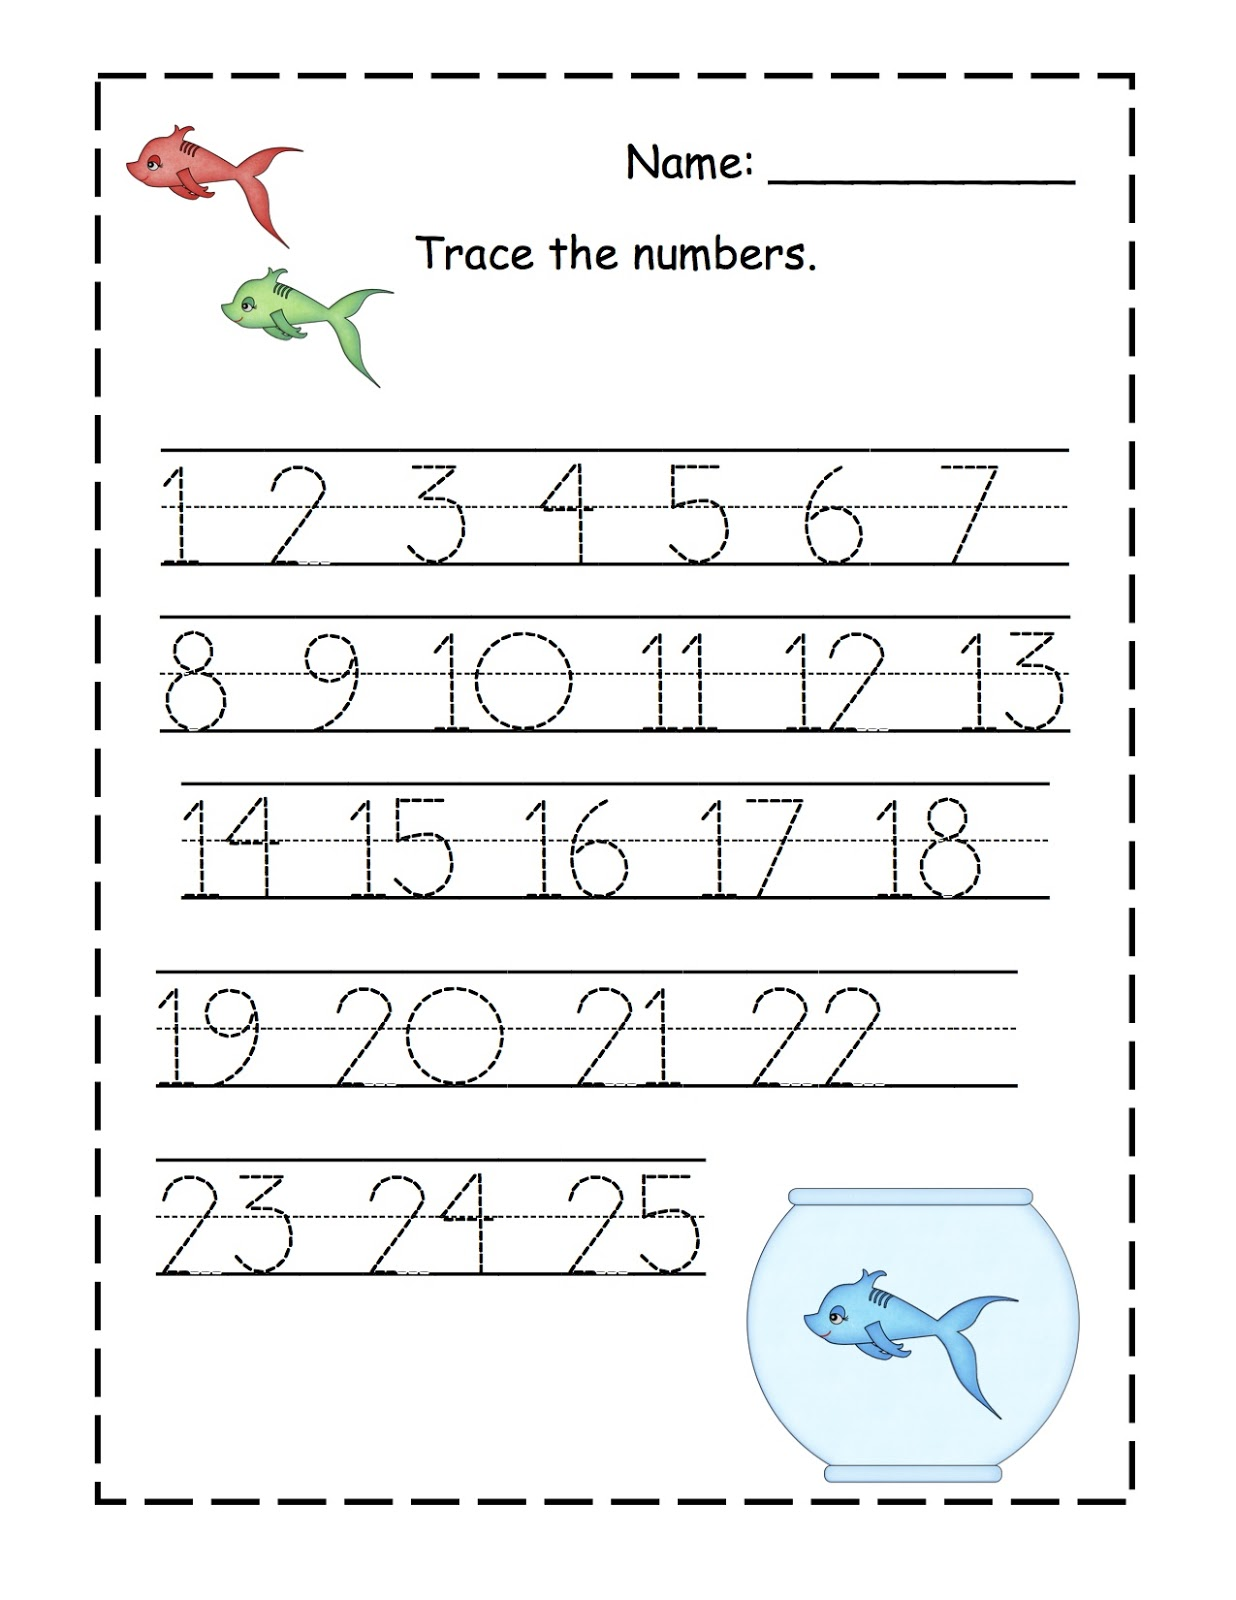 Worksheets Preschool Number Tracing Worksheets 1-20 printable number tracing worksheets for kindergarten numbers 1 free for